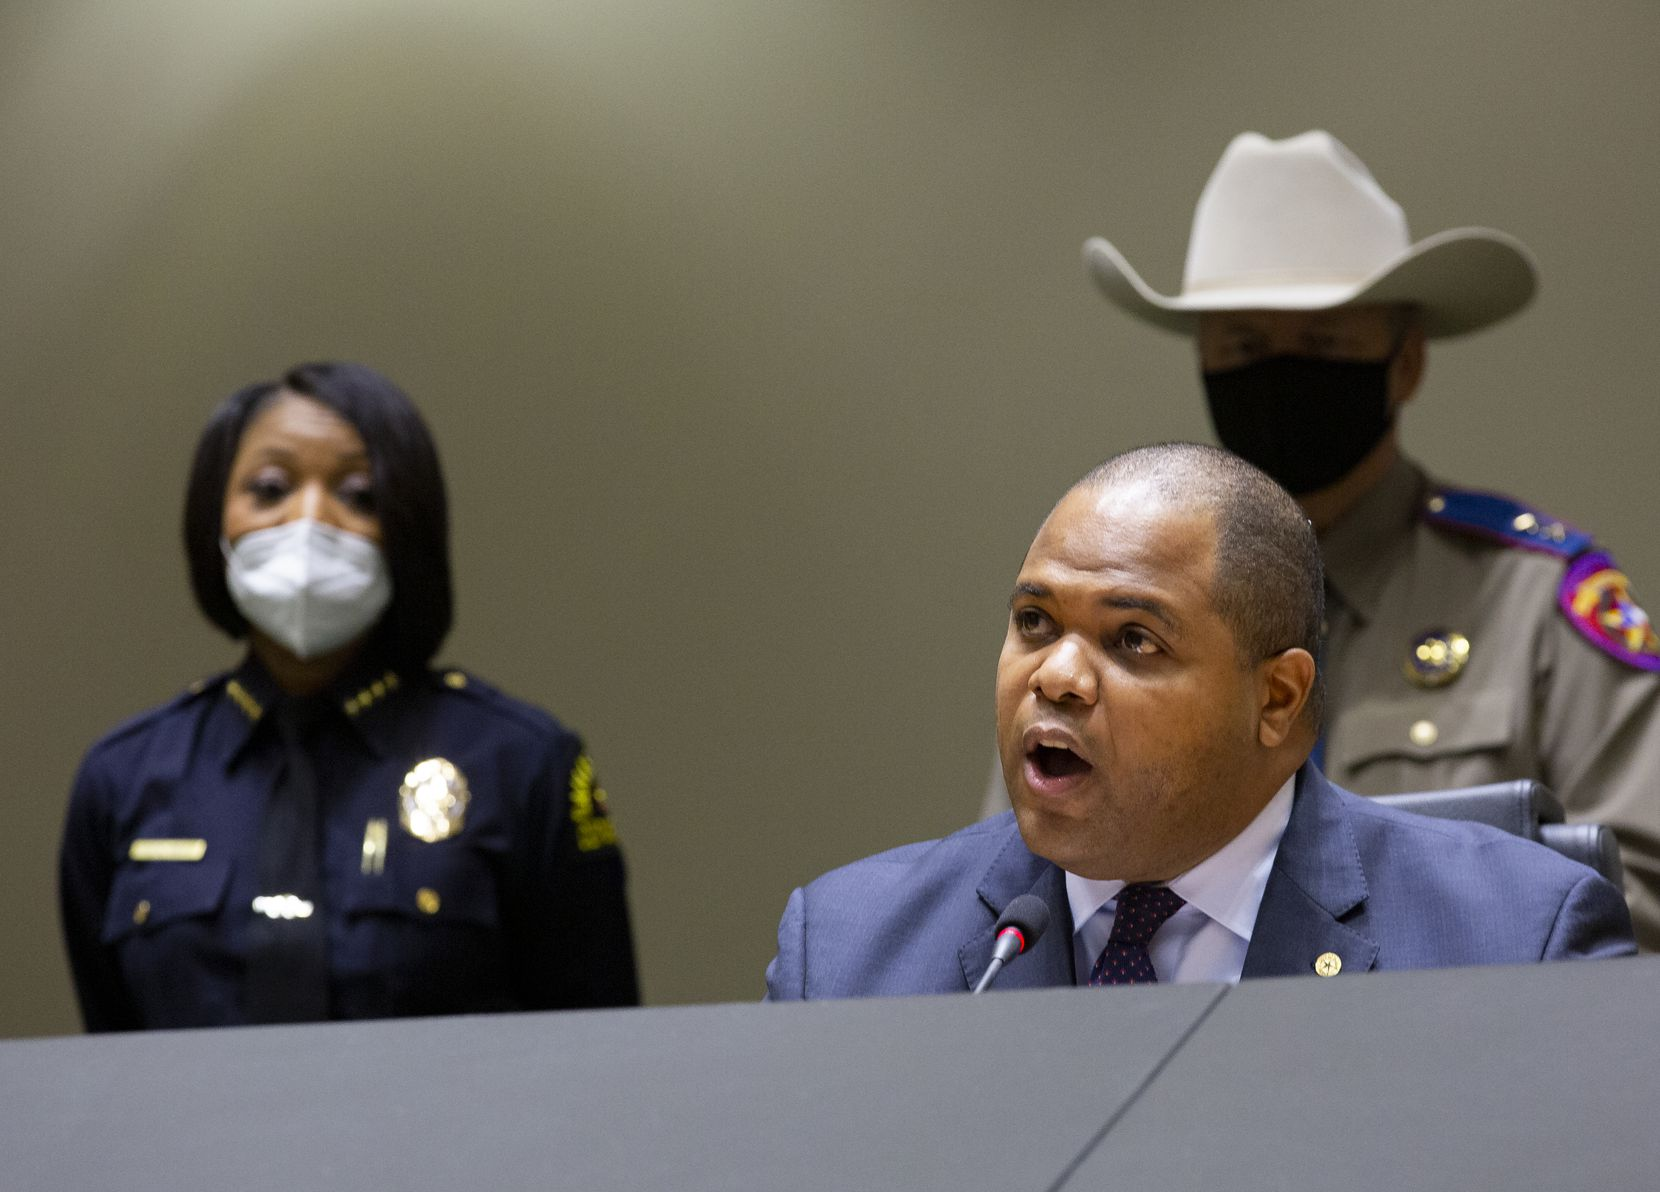 Dallas Police Chief Reneé Hall (left) listens as Dallas Mayor Eric Johnson speaks at a press conference on protest violenceon Tuesday, June 2, 2020 at City Hall. Johnson's budget savings proposal of trimming top salaries in City Hall, which received no support, had not included police employees.